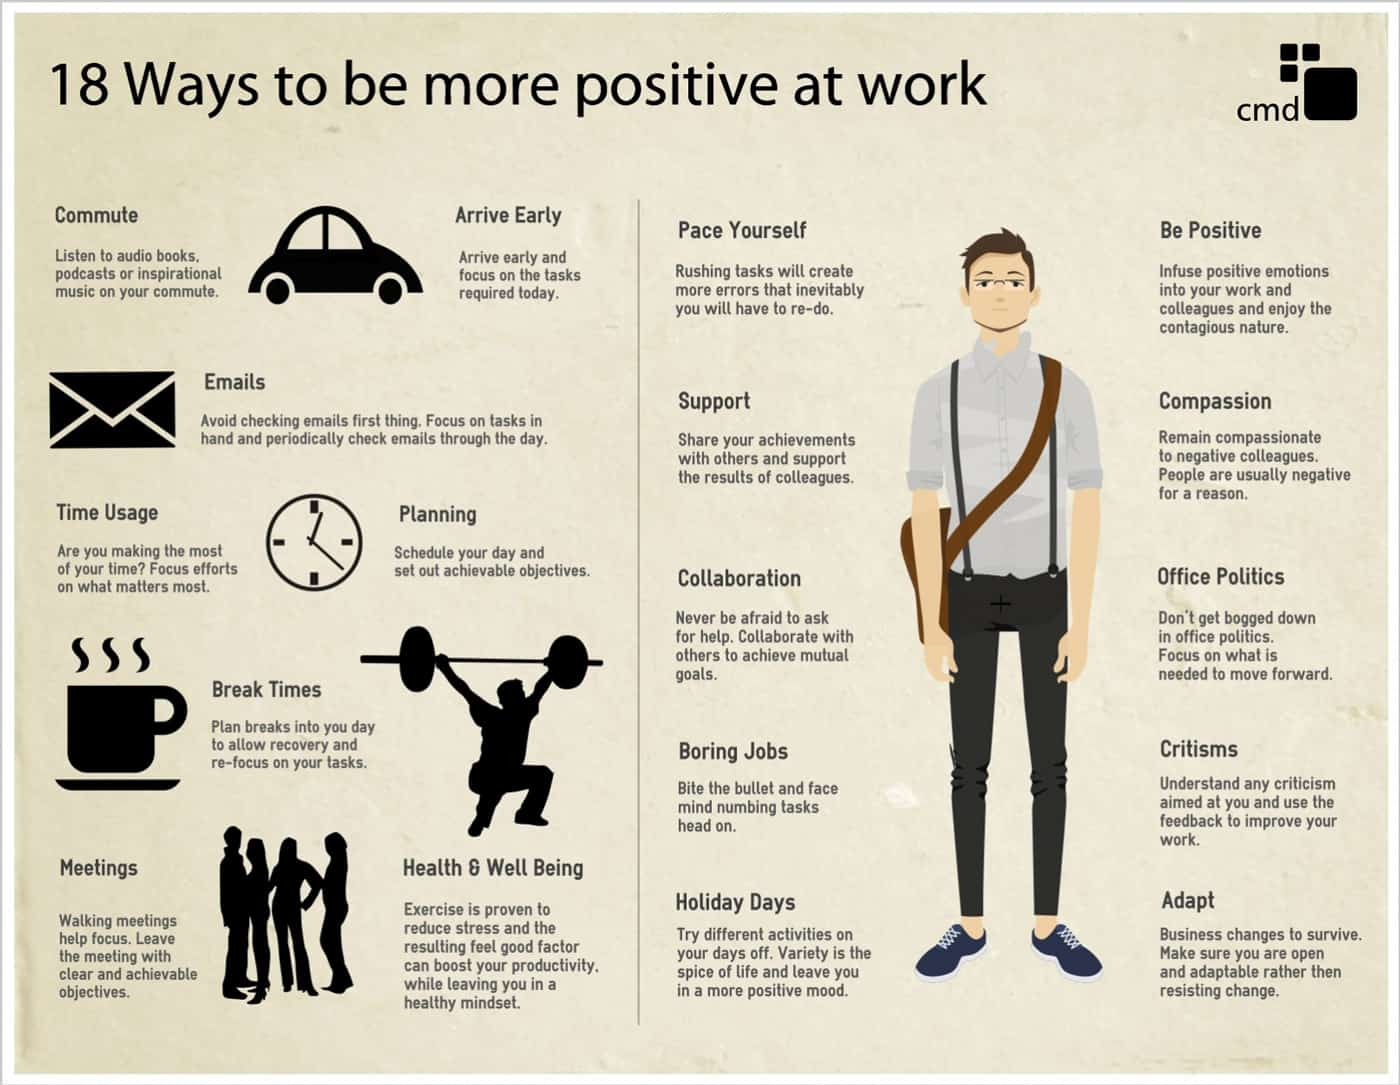 http://dailyinfographic.com/wp-content/uploads/2014/05/18-More-Positive-Ways-Infographic.jpg